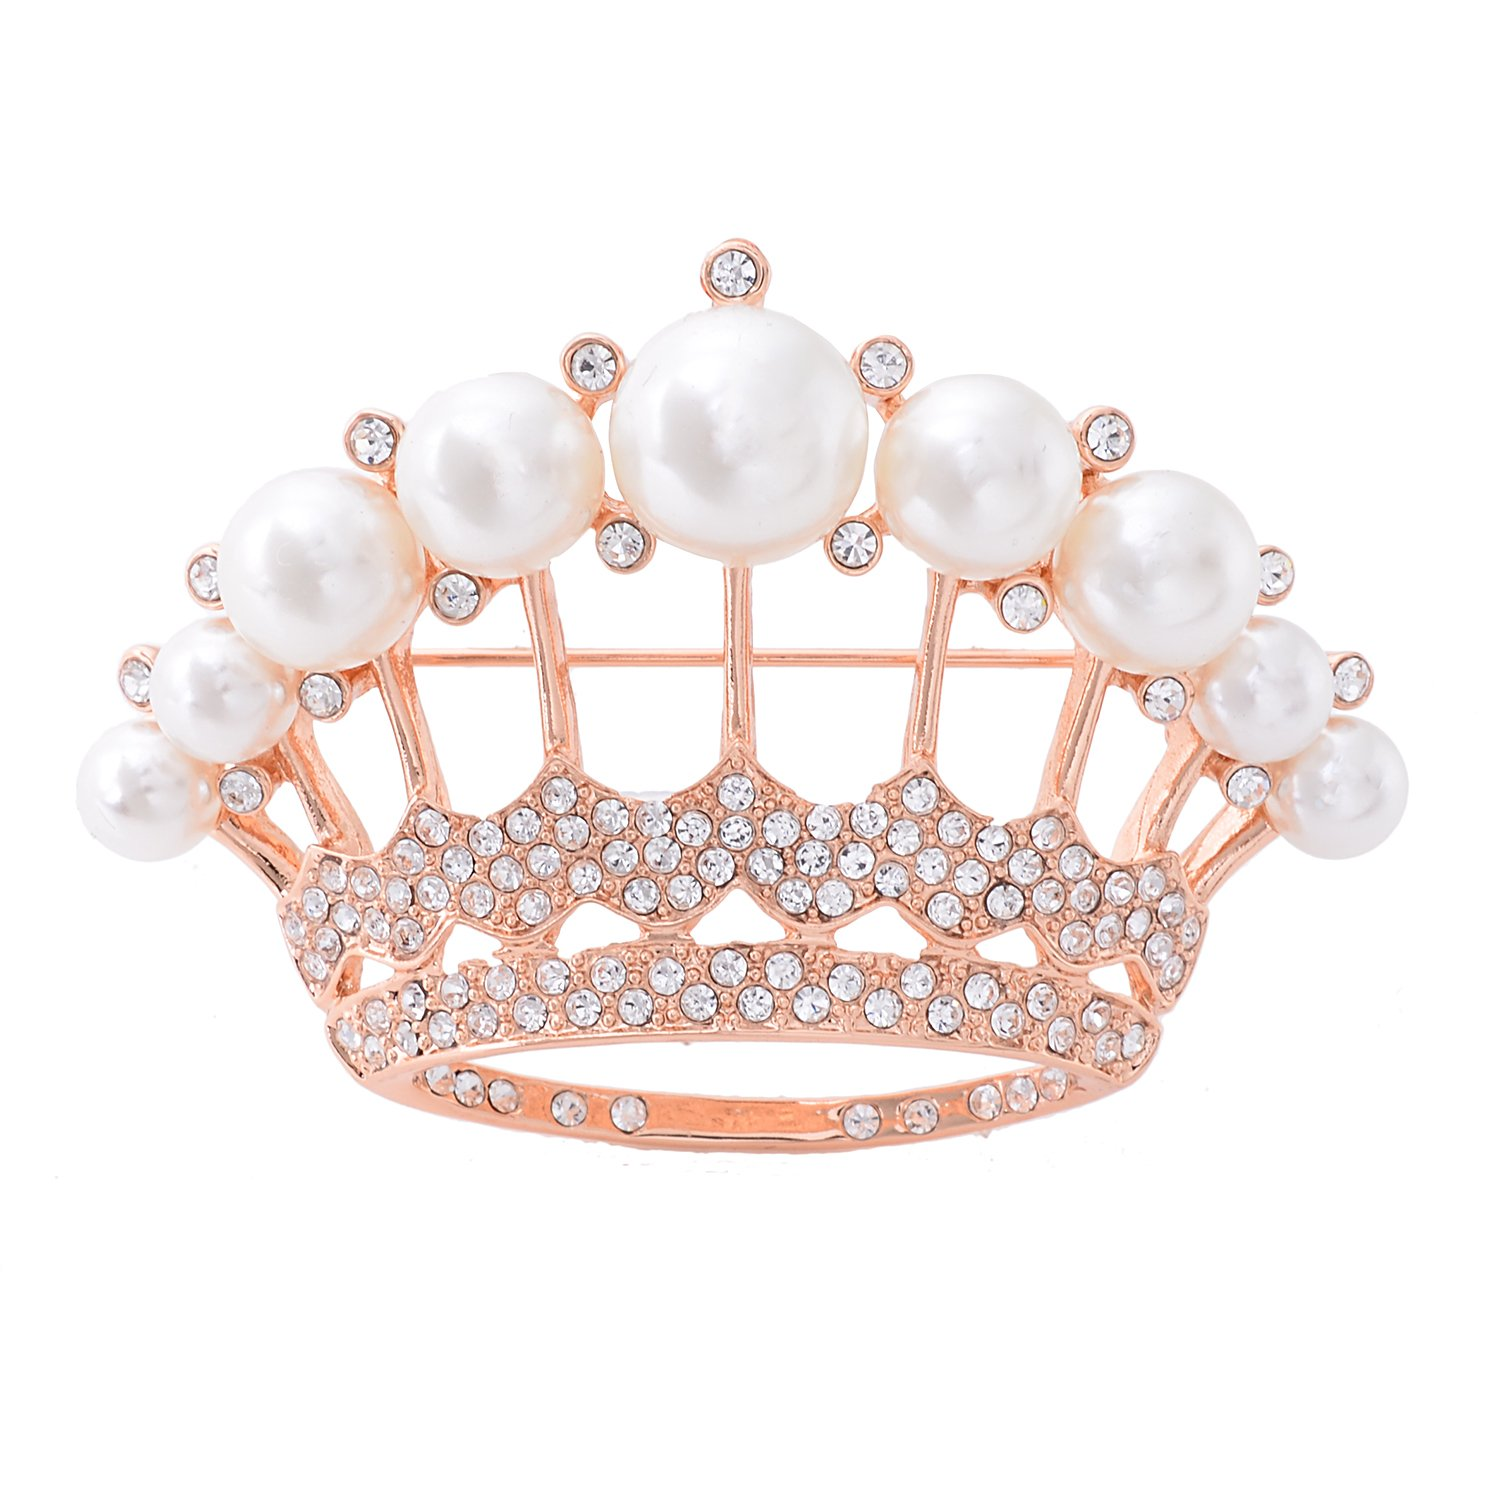 OBONNIE Large Gold Tone Crystal Queen Crown Pin Brooch With Pearl Wedding Bridal Pin (Rose Gold)